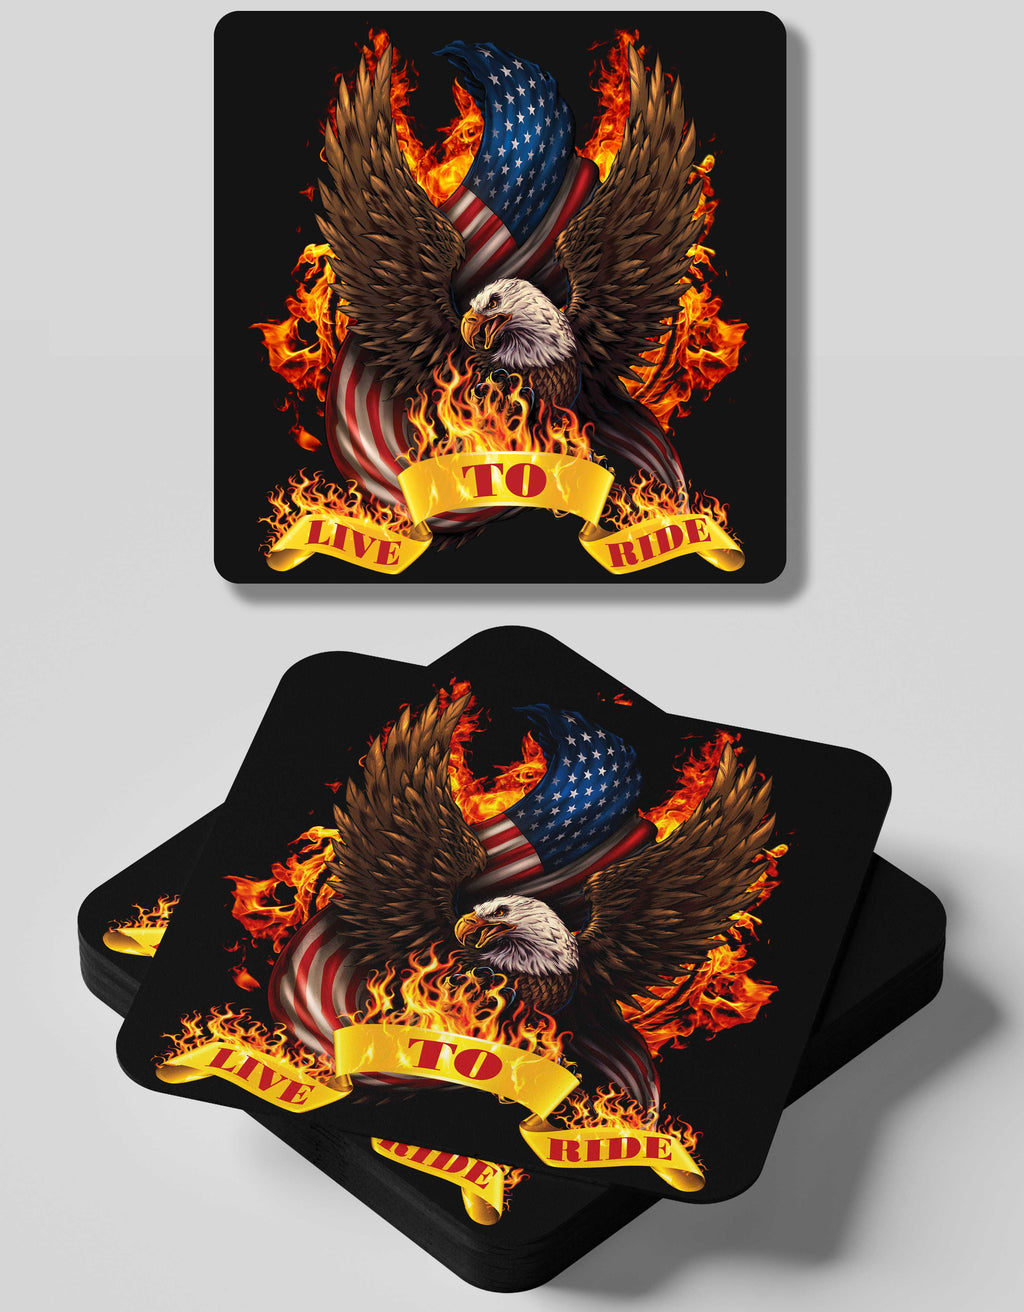 Live To Ride- 4 Coasters Set